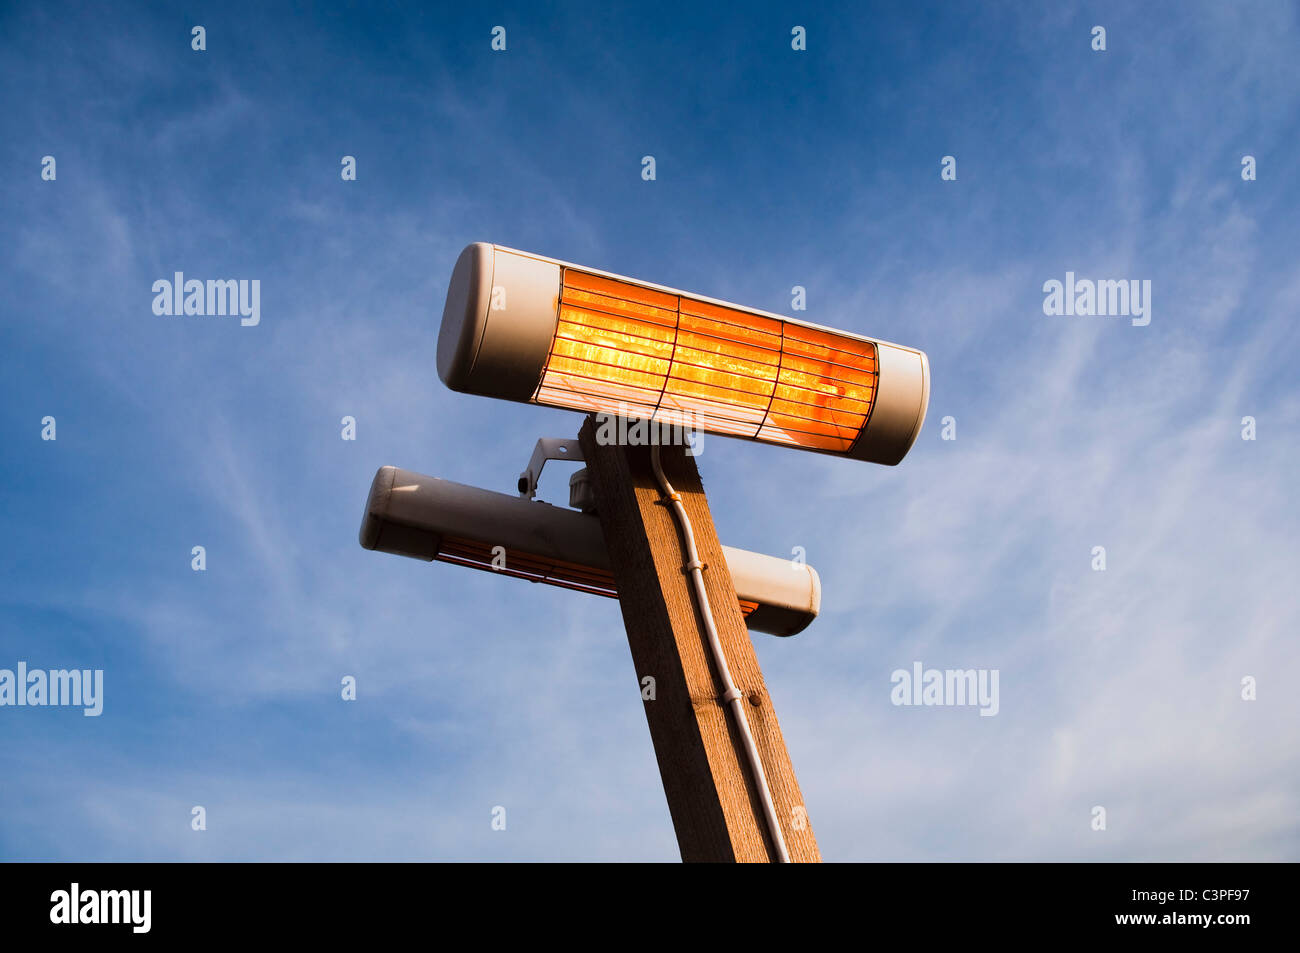 Outdoor electric heater - Stock Image